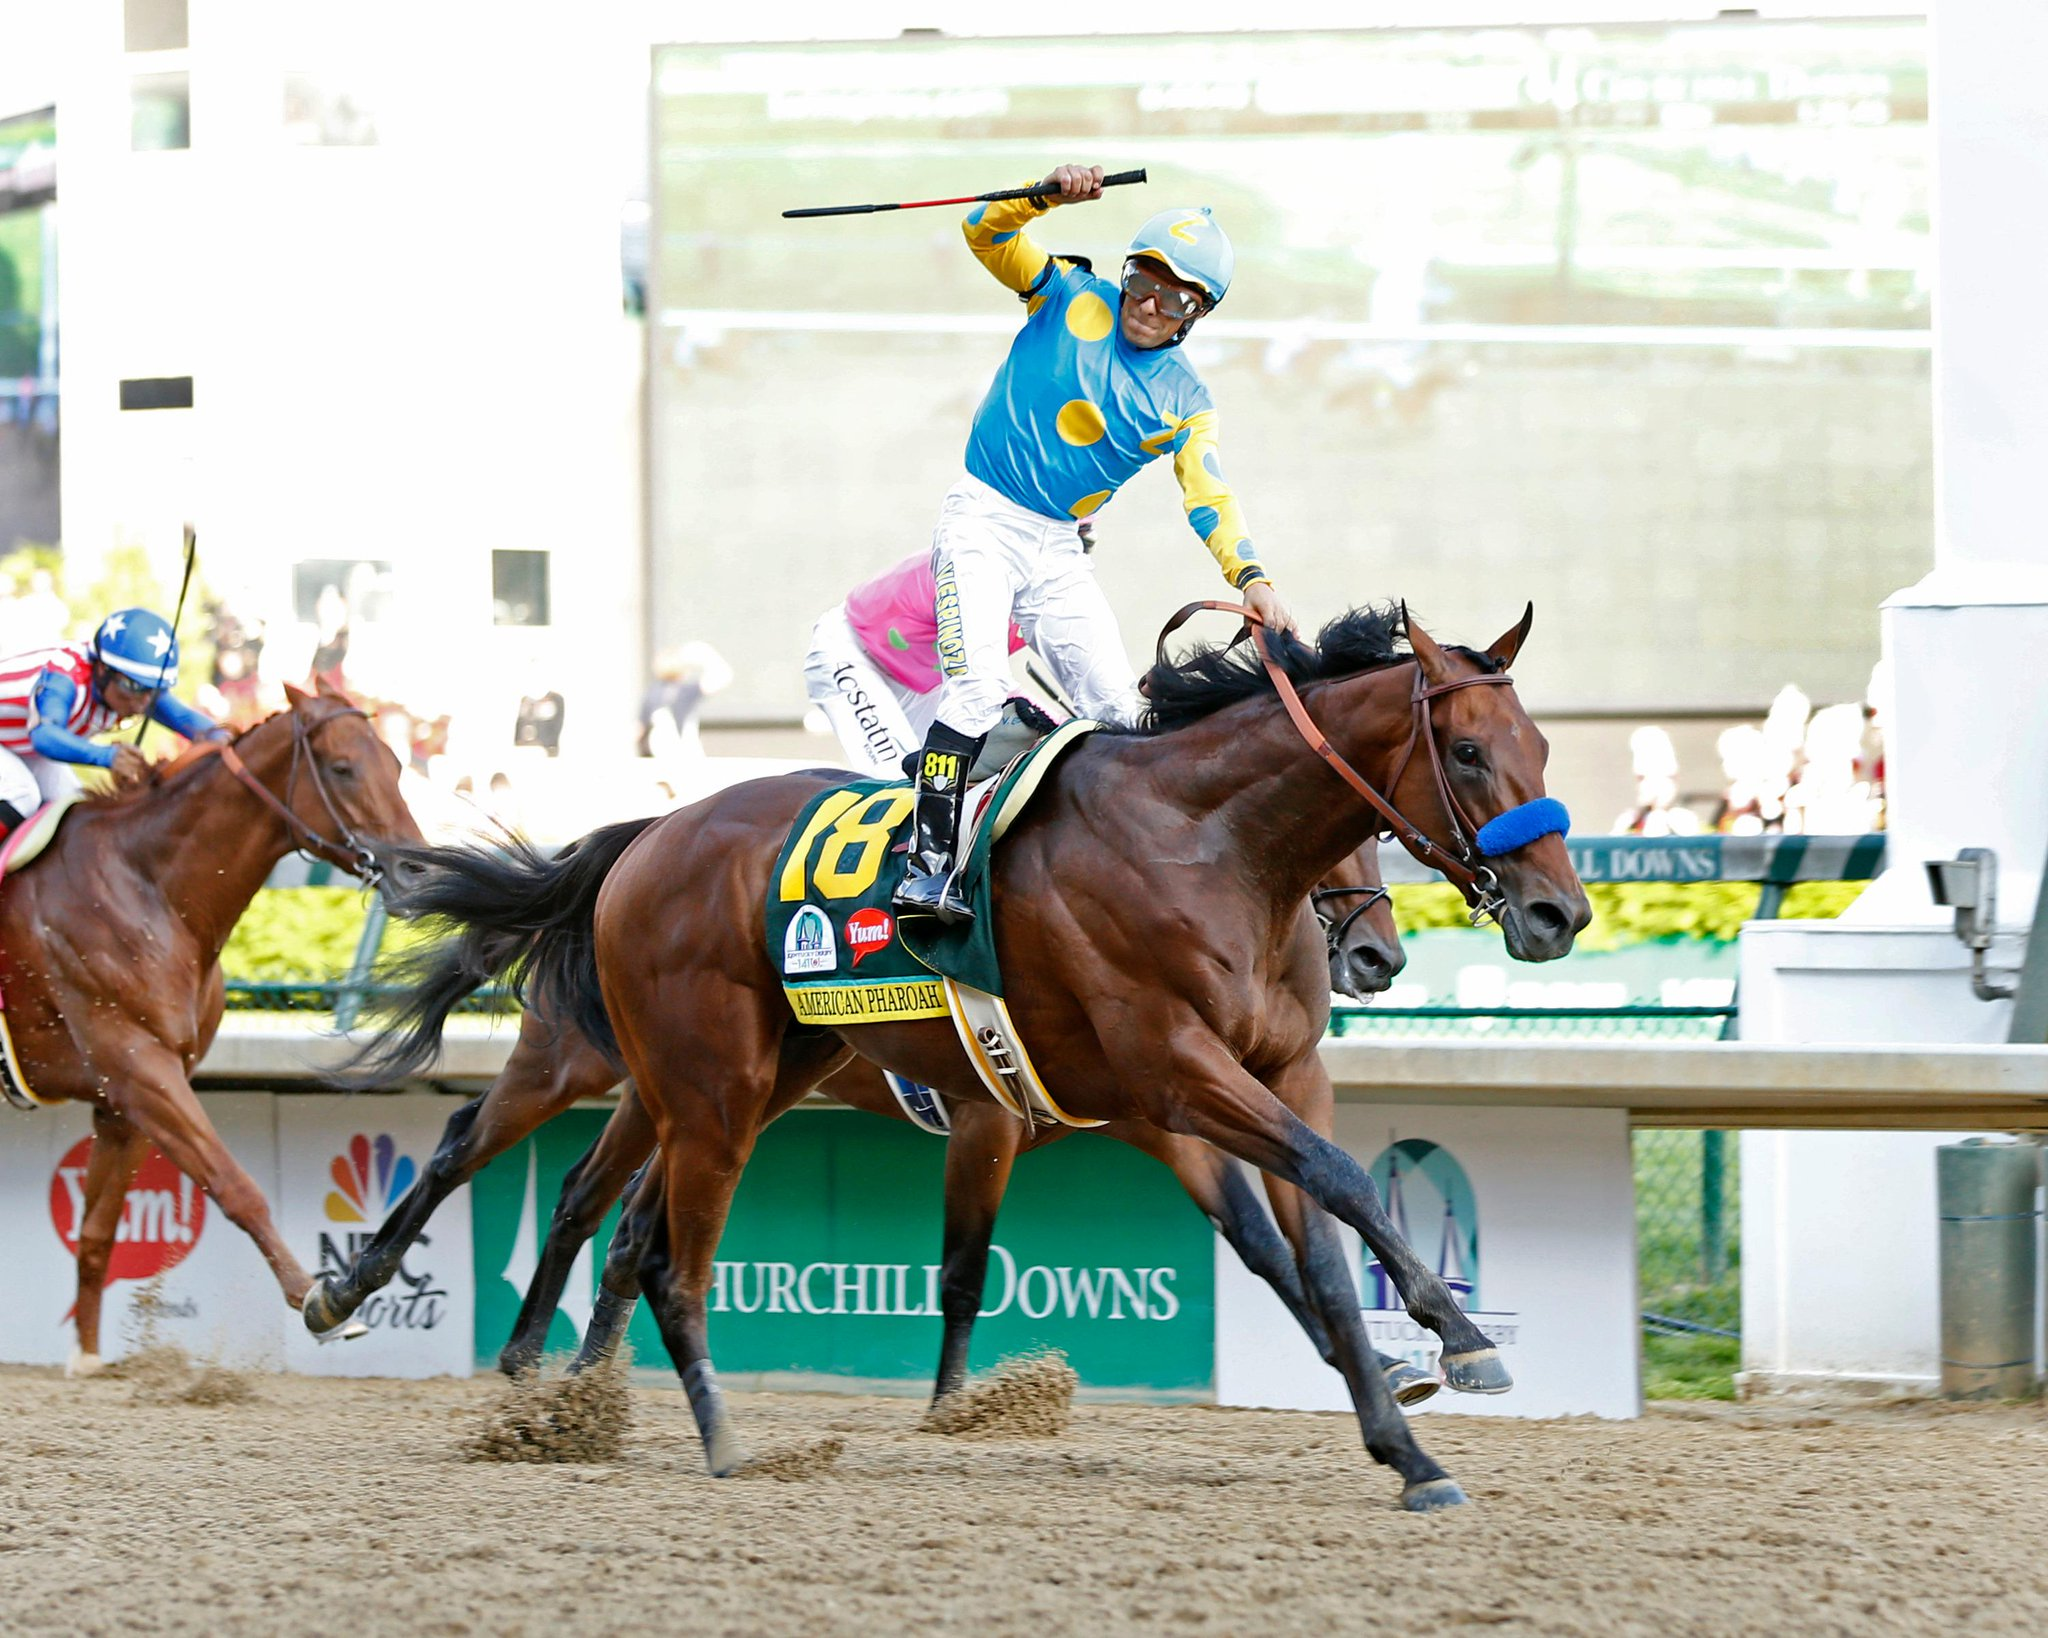 American Pharoah – Kentucky Derby 2015